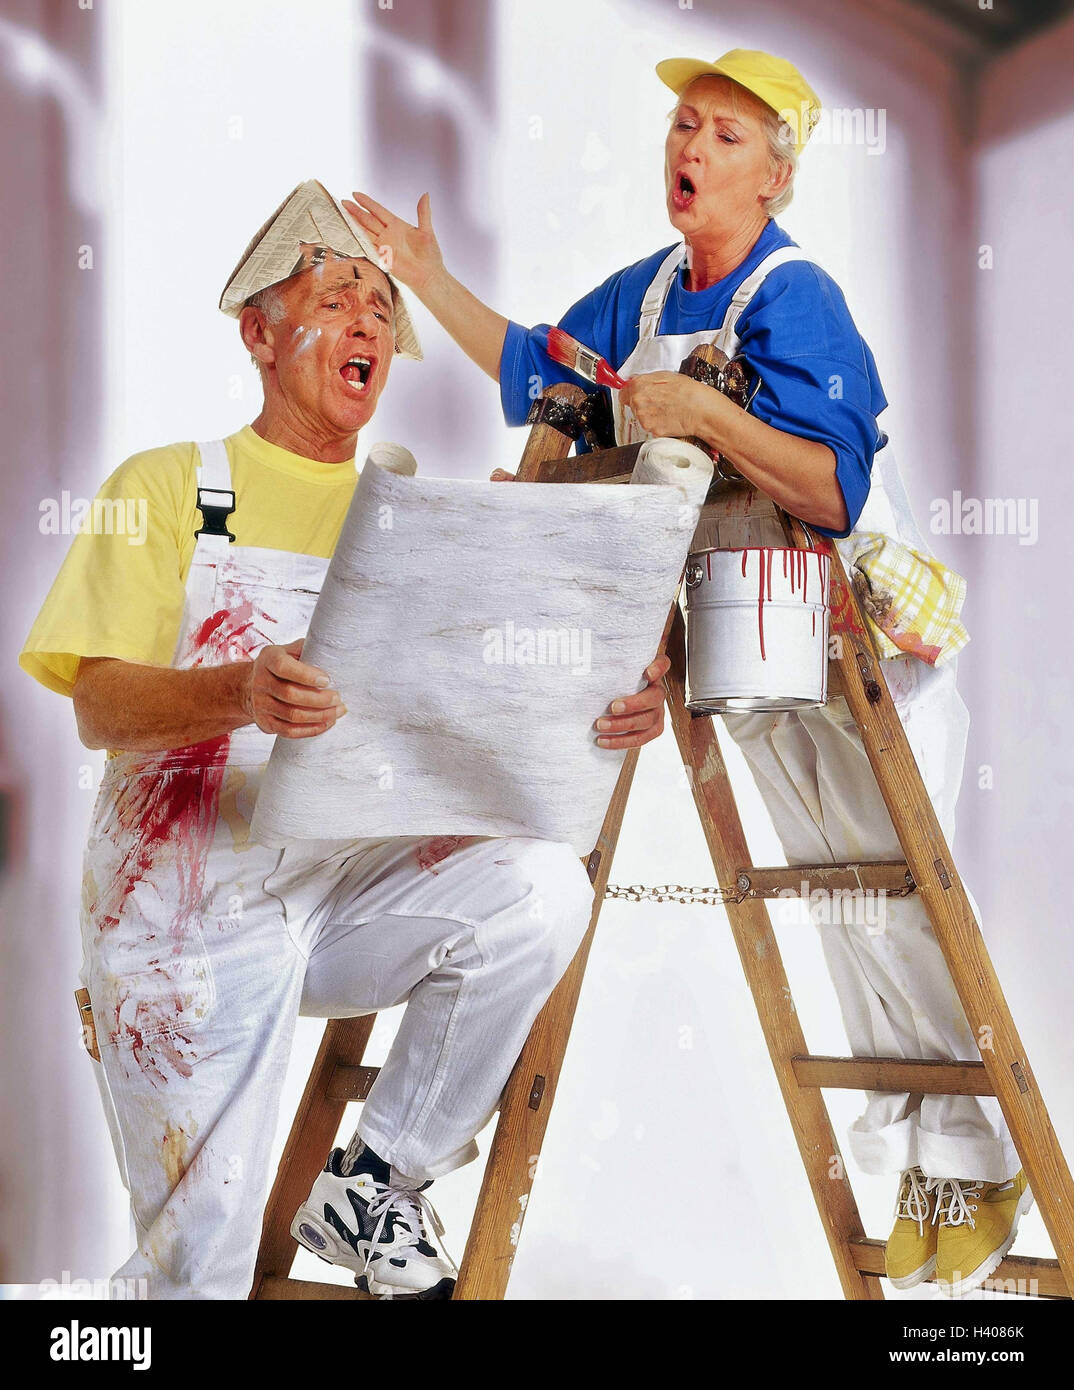 Do it yourself senior couple renovation wallpaper colour stock do it yourself senior couple renovation wallpaper colour conductor stand sing gesture paint senior studio inside man woman old renovate solutioingenieria Gallery